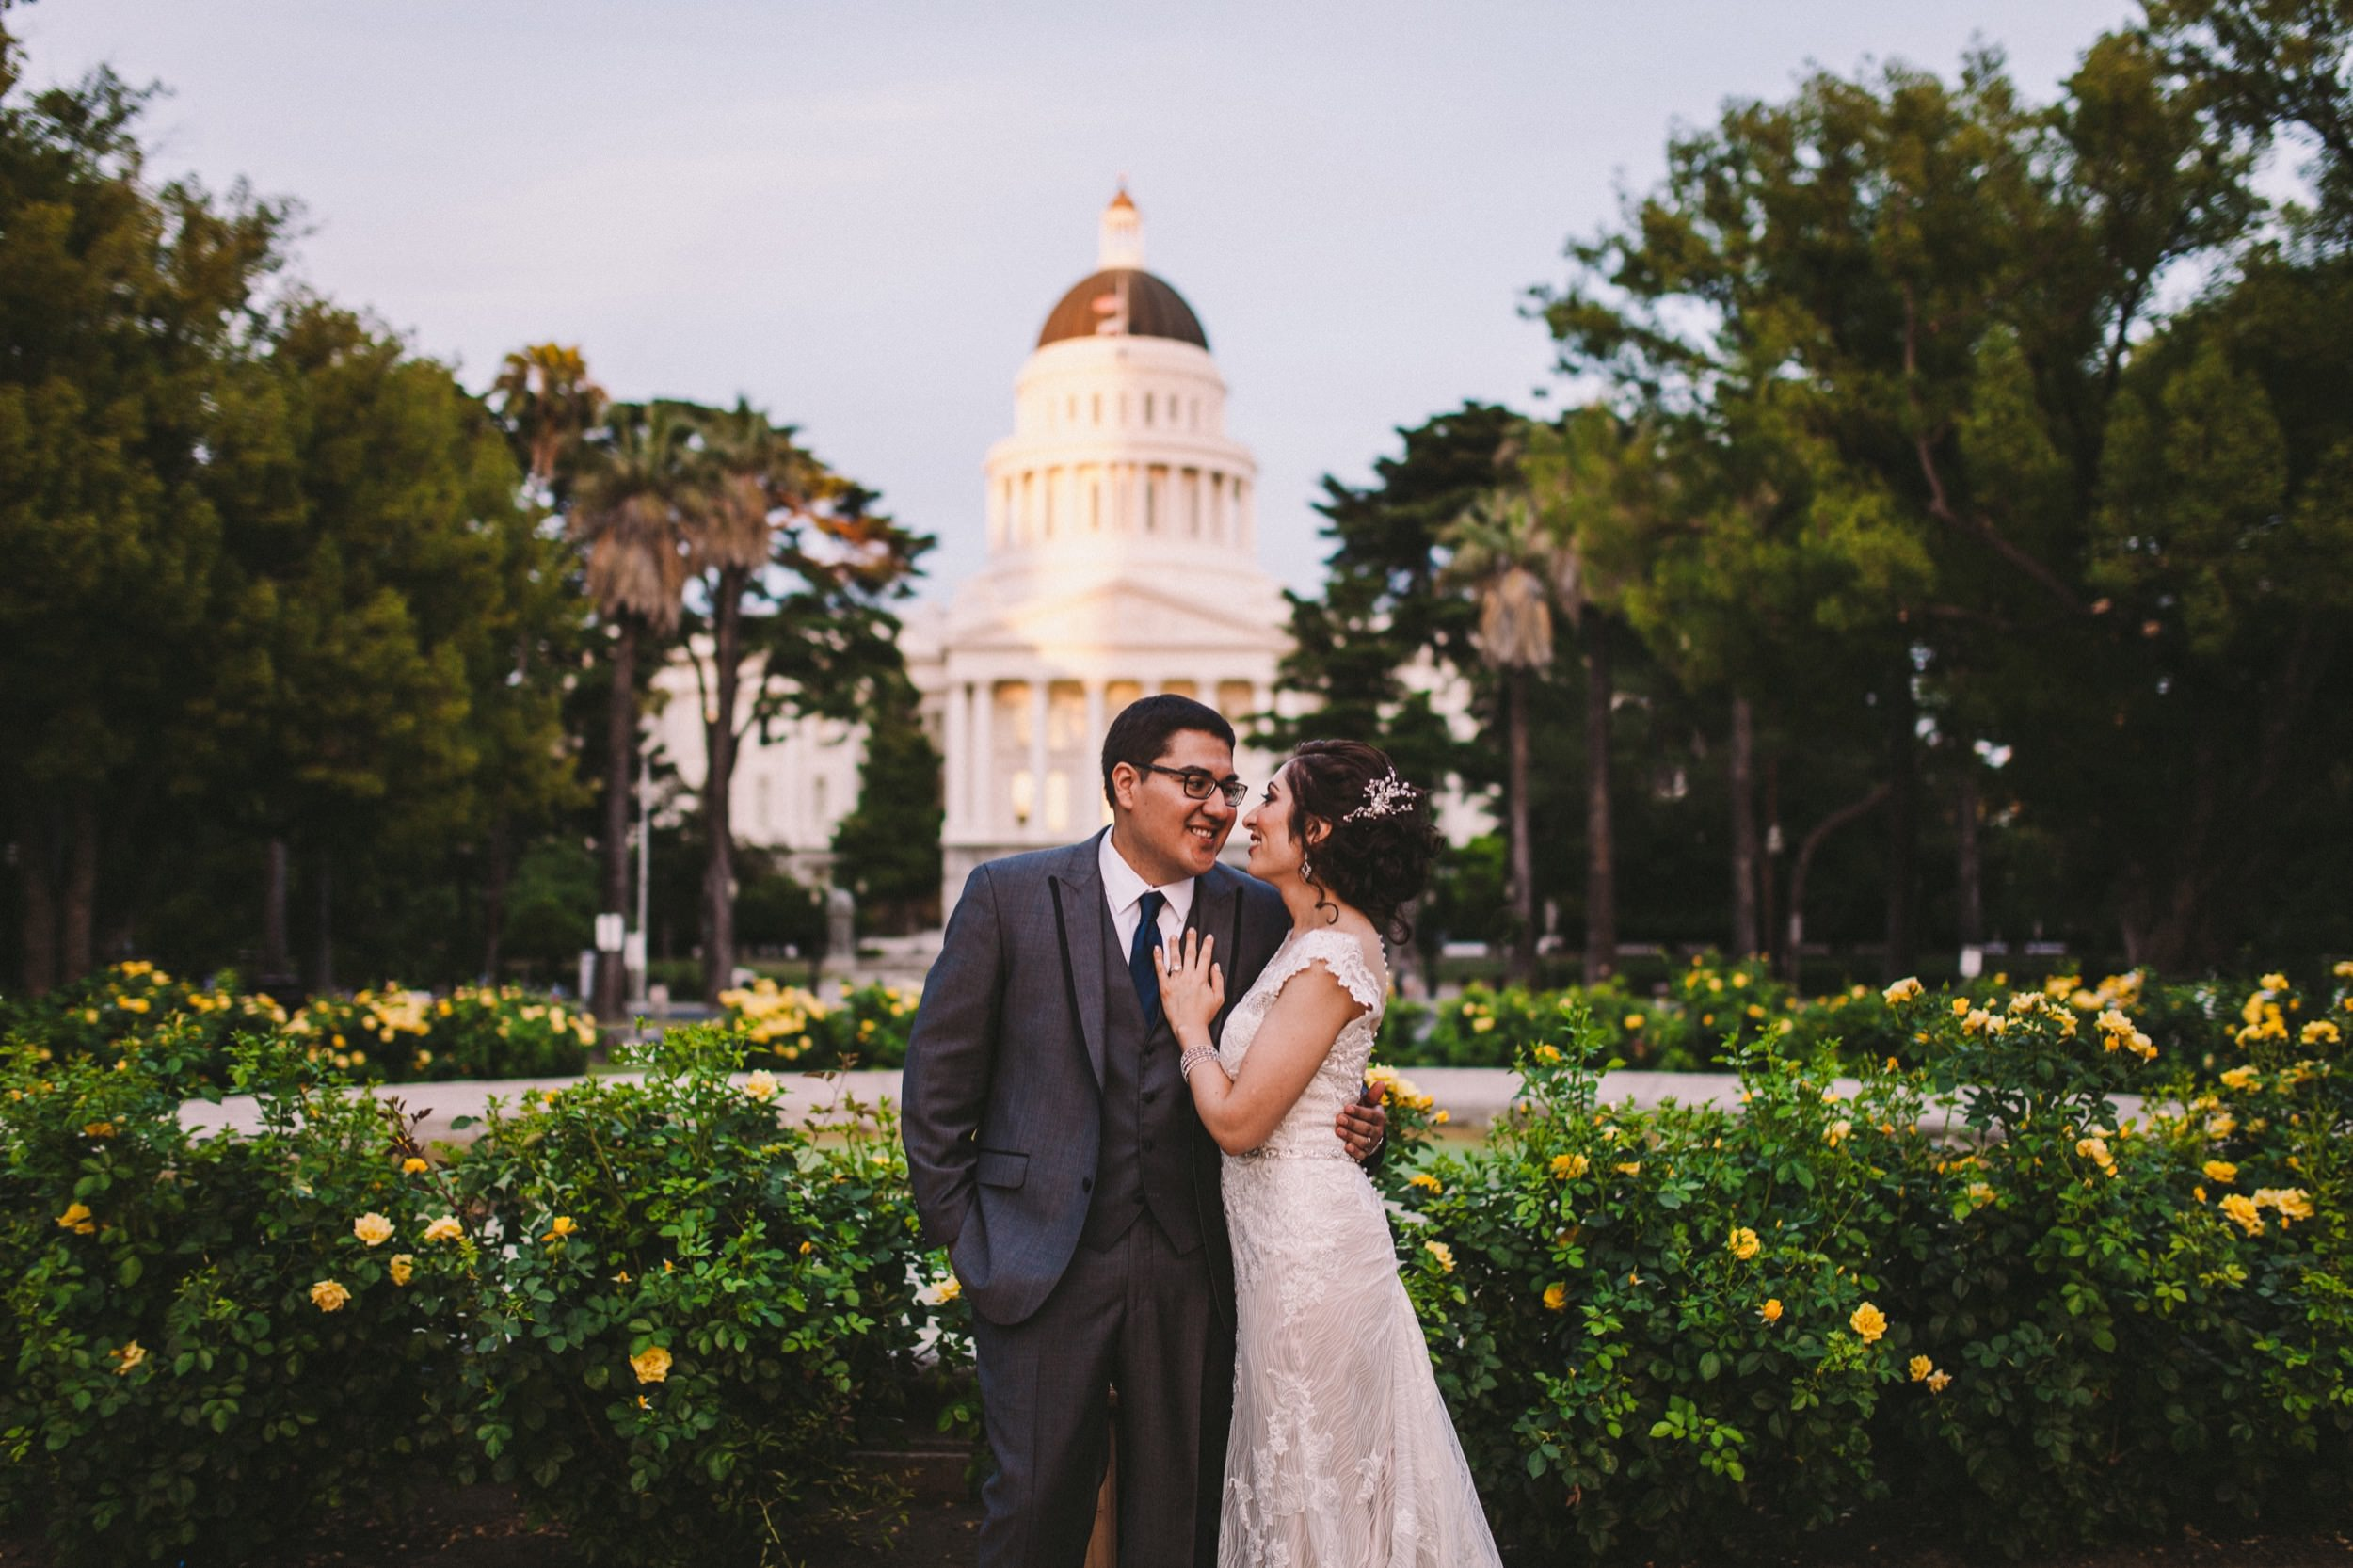 Sacramento Sutter Club & Capitol Building Wedding Photography-583.jpg